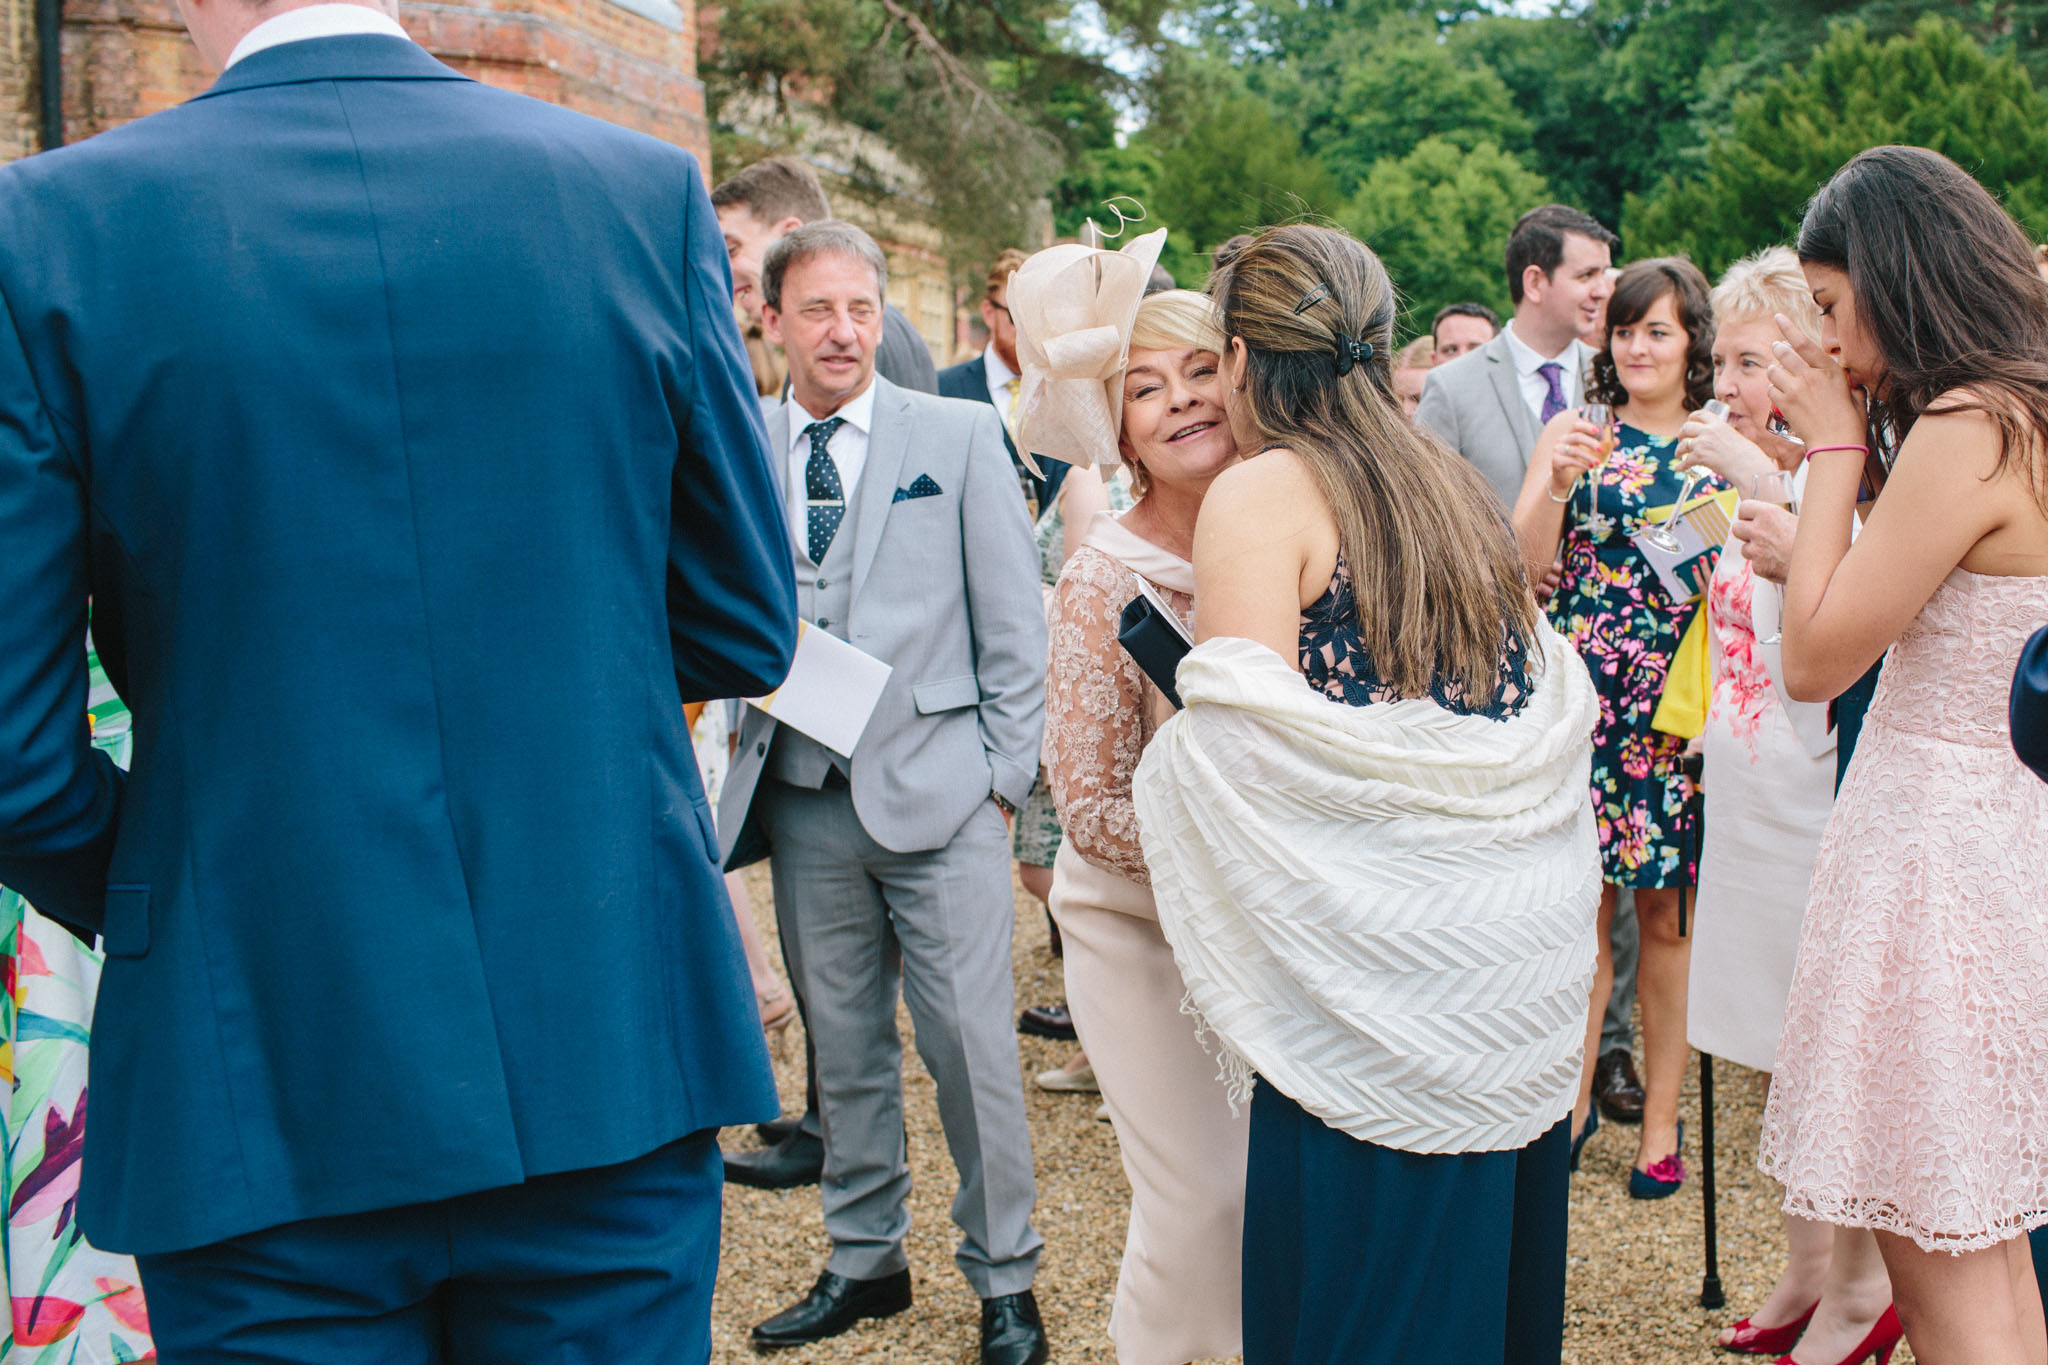 Wotton house wedding photography, hayley rose photography-29.jpg